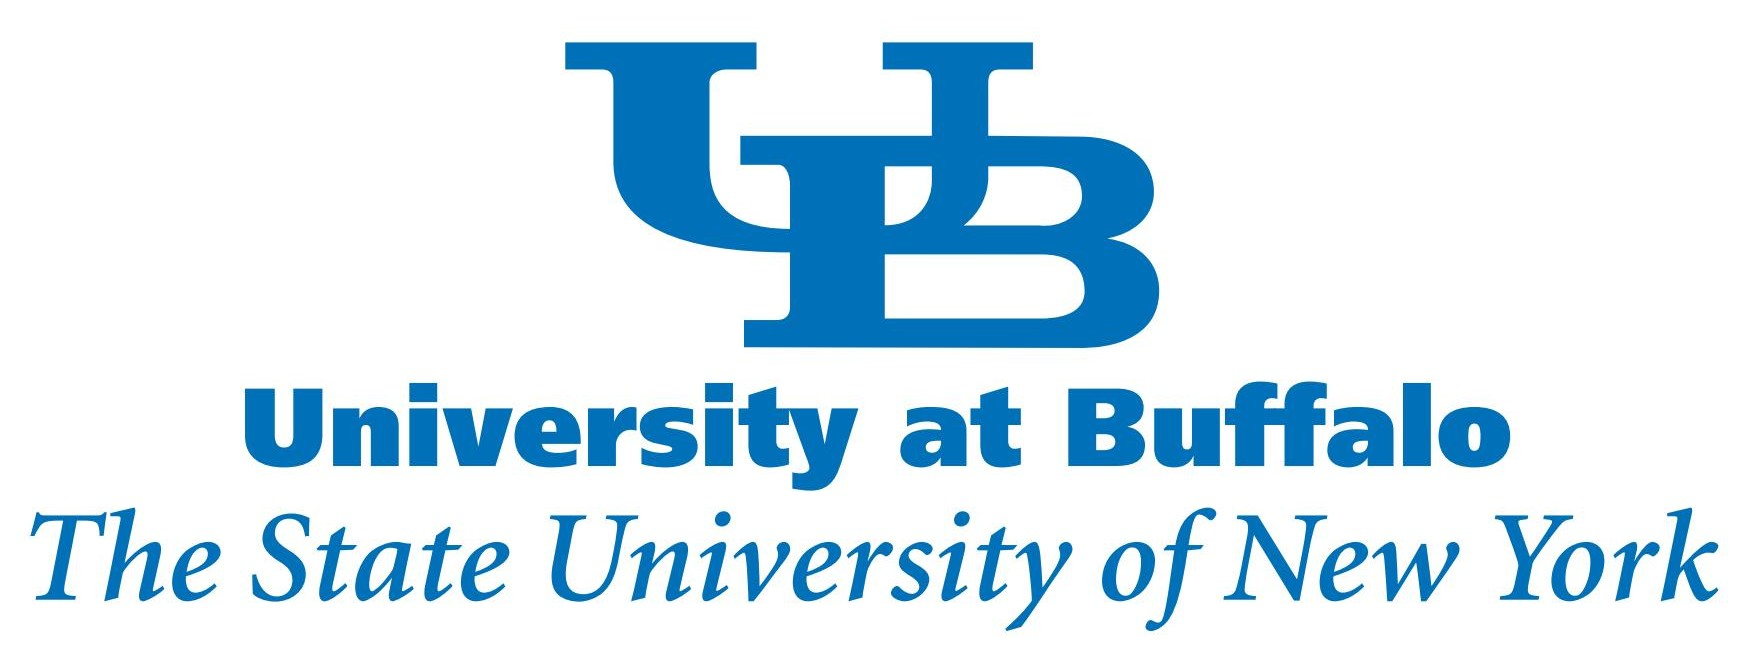 University at Buffalo UB logo